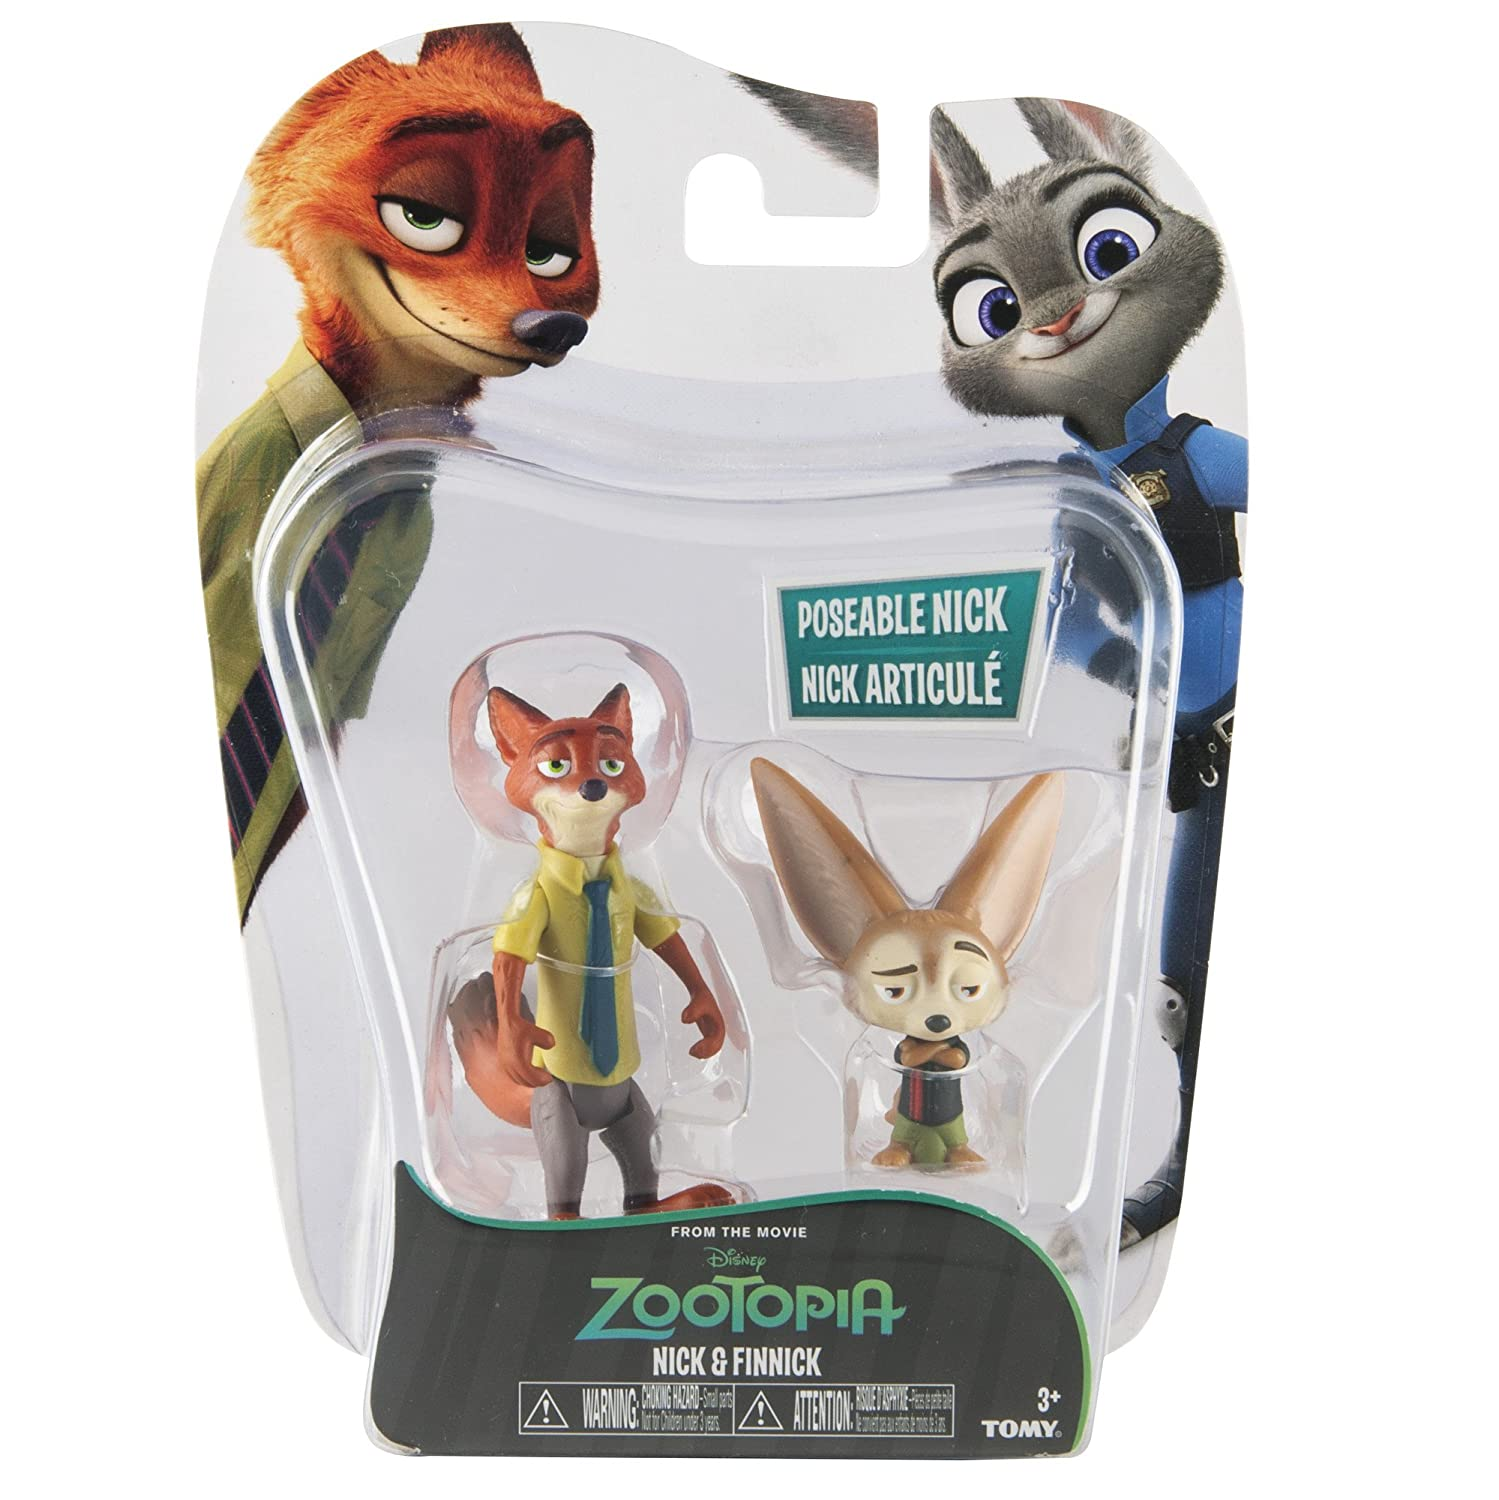 Zootopia Character Pack Nick And Finnick TOMY L70001